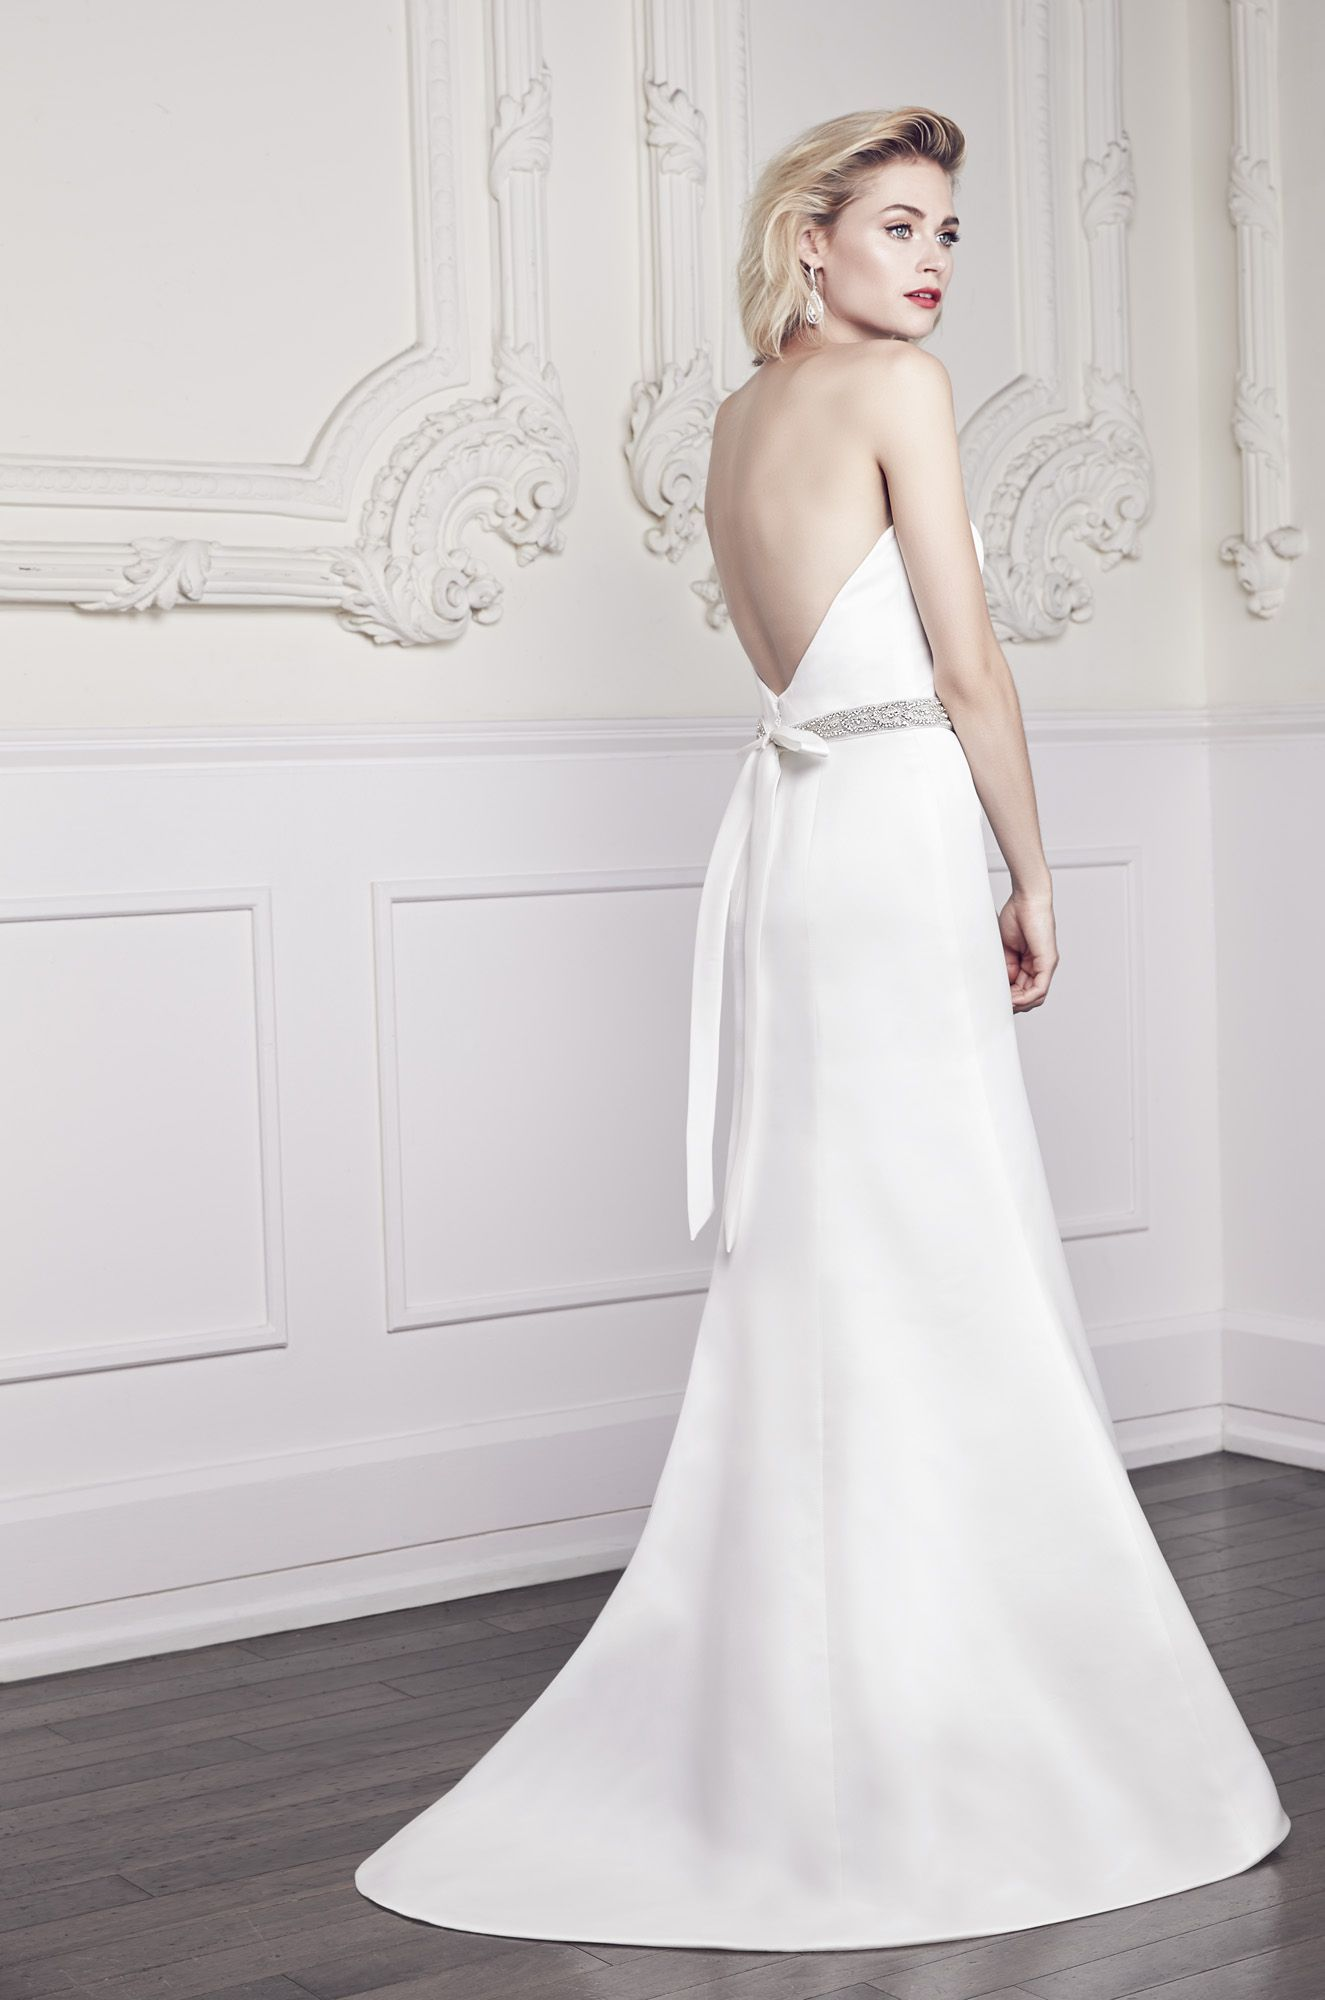 Style * 1957 * » Bridal Gowns, Wedding Dresses » Spring